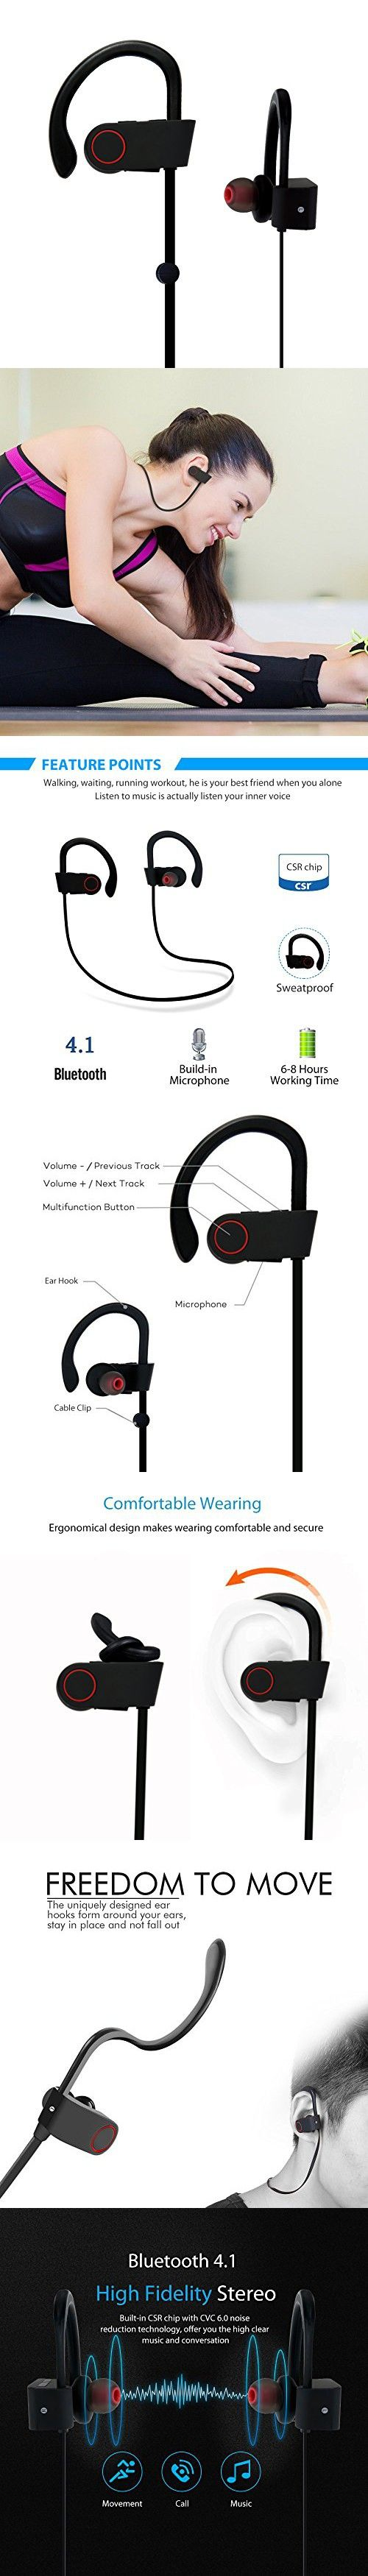 Bluetooth Earbuds, OXoqo in Ear Sport Headphones Best with Mic Wireless Earphones IPX4 Sweatproof Fitness Stereo Ear Phones Gym Running Exercise Workout Headset for iPad iPhone Android Phone(Black)